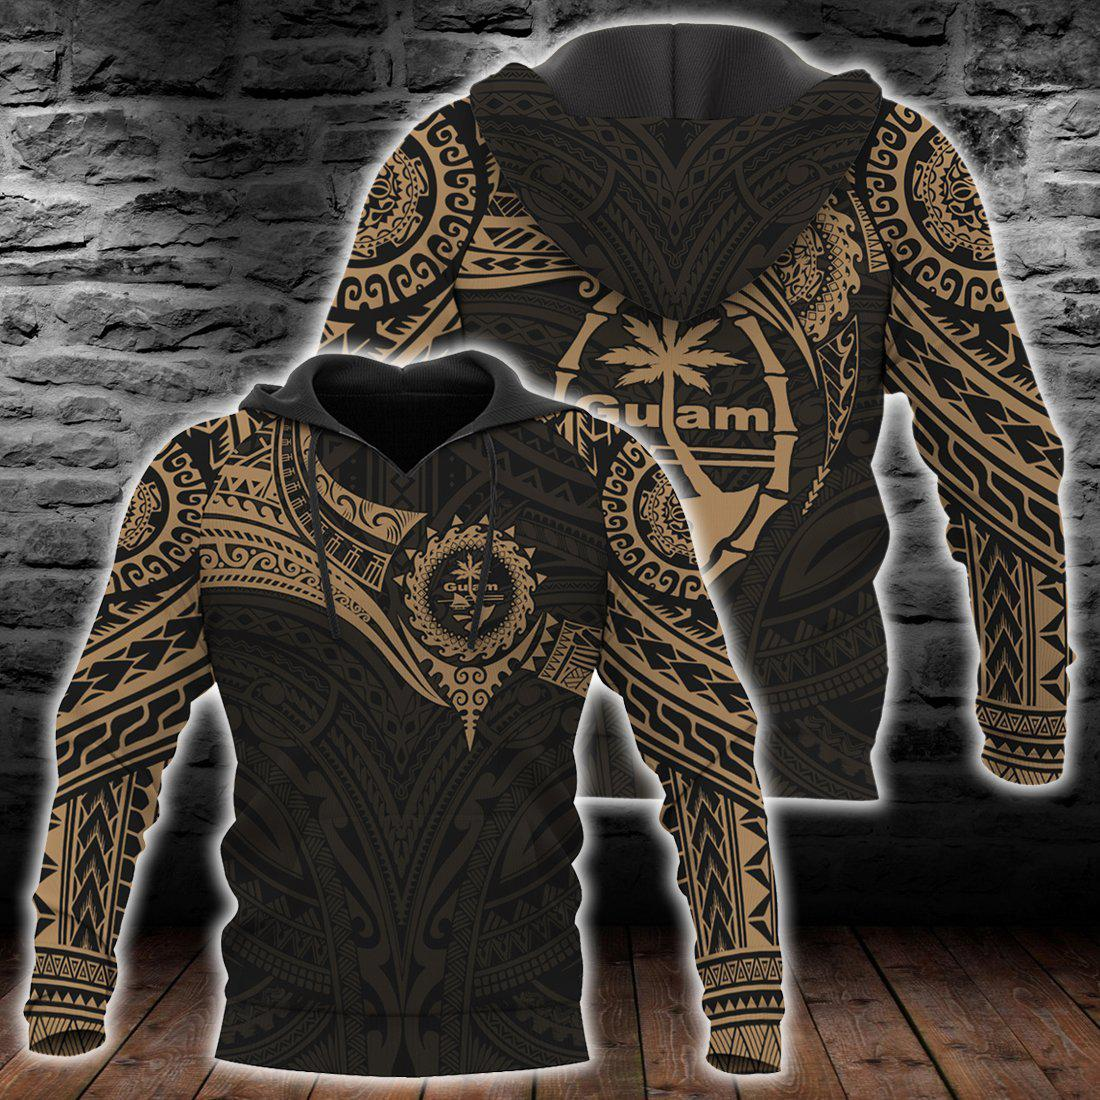 Guam Polynesian Gold Heart Shield all over print